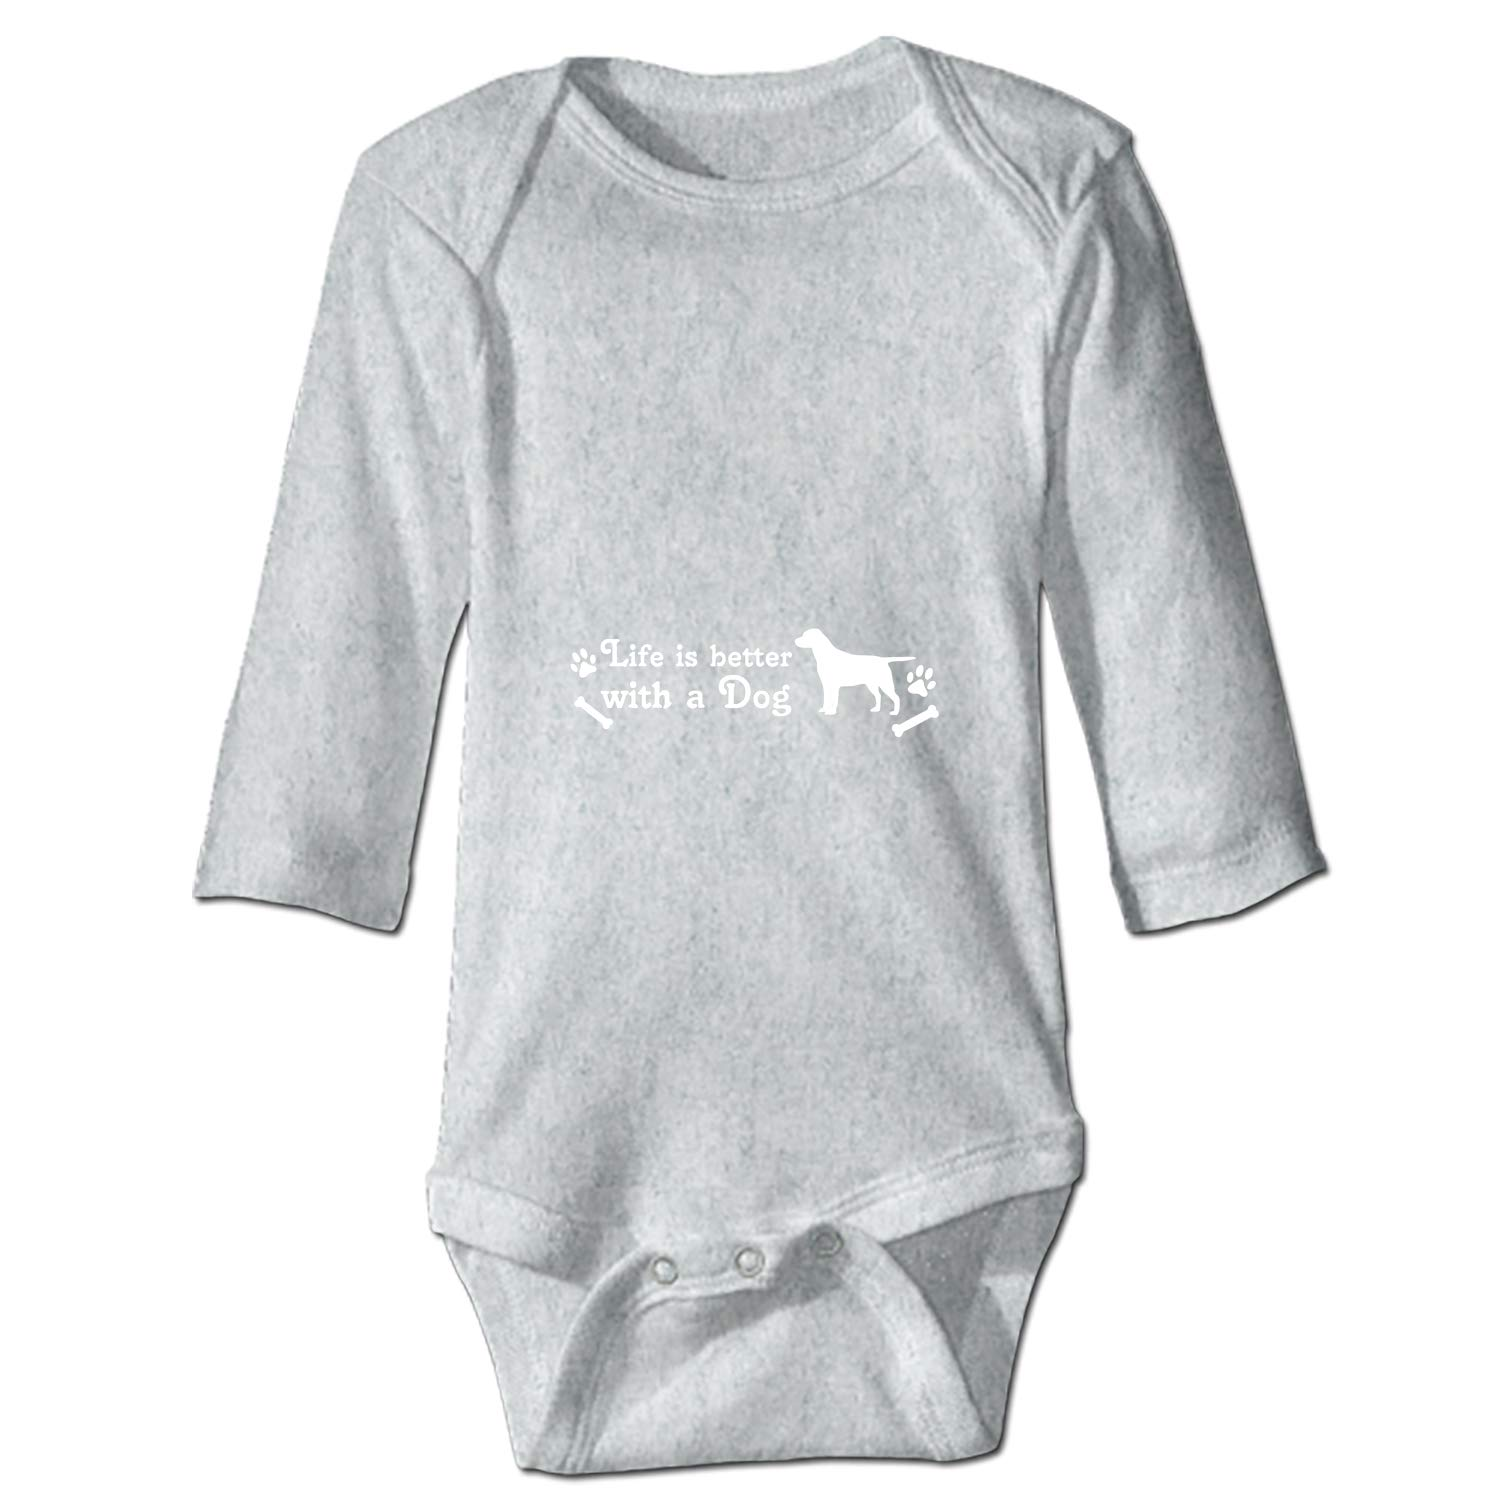 Chenqin-s Get in Loser Unisex Baby Long-Sleeve Onesies Cotton Bodysuits Infant Romper Clothes